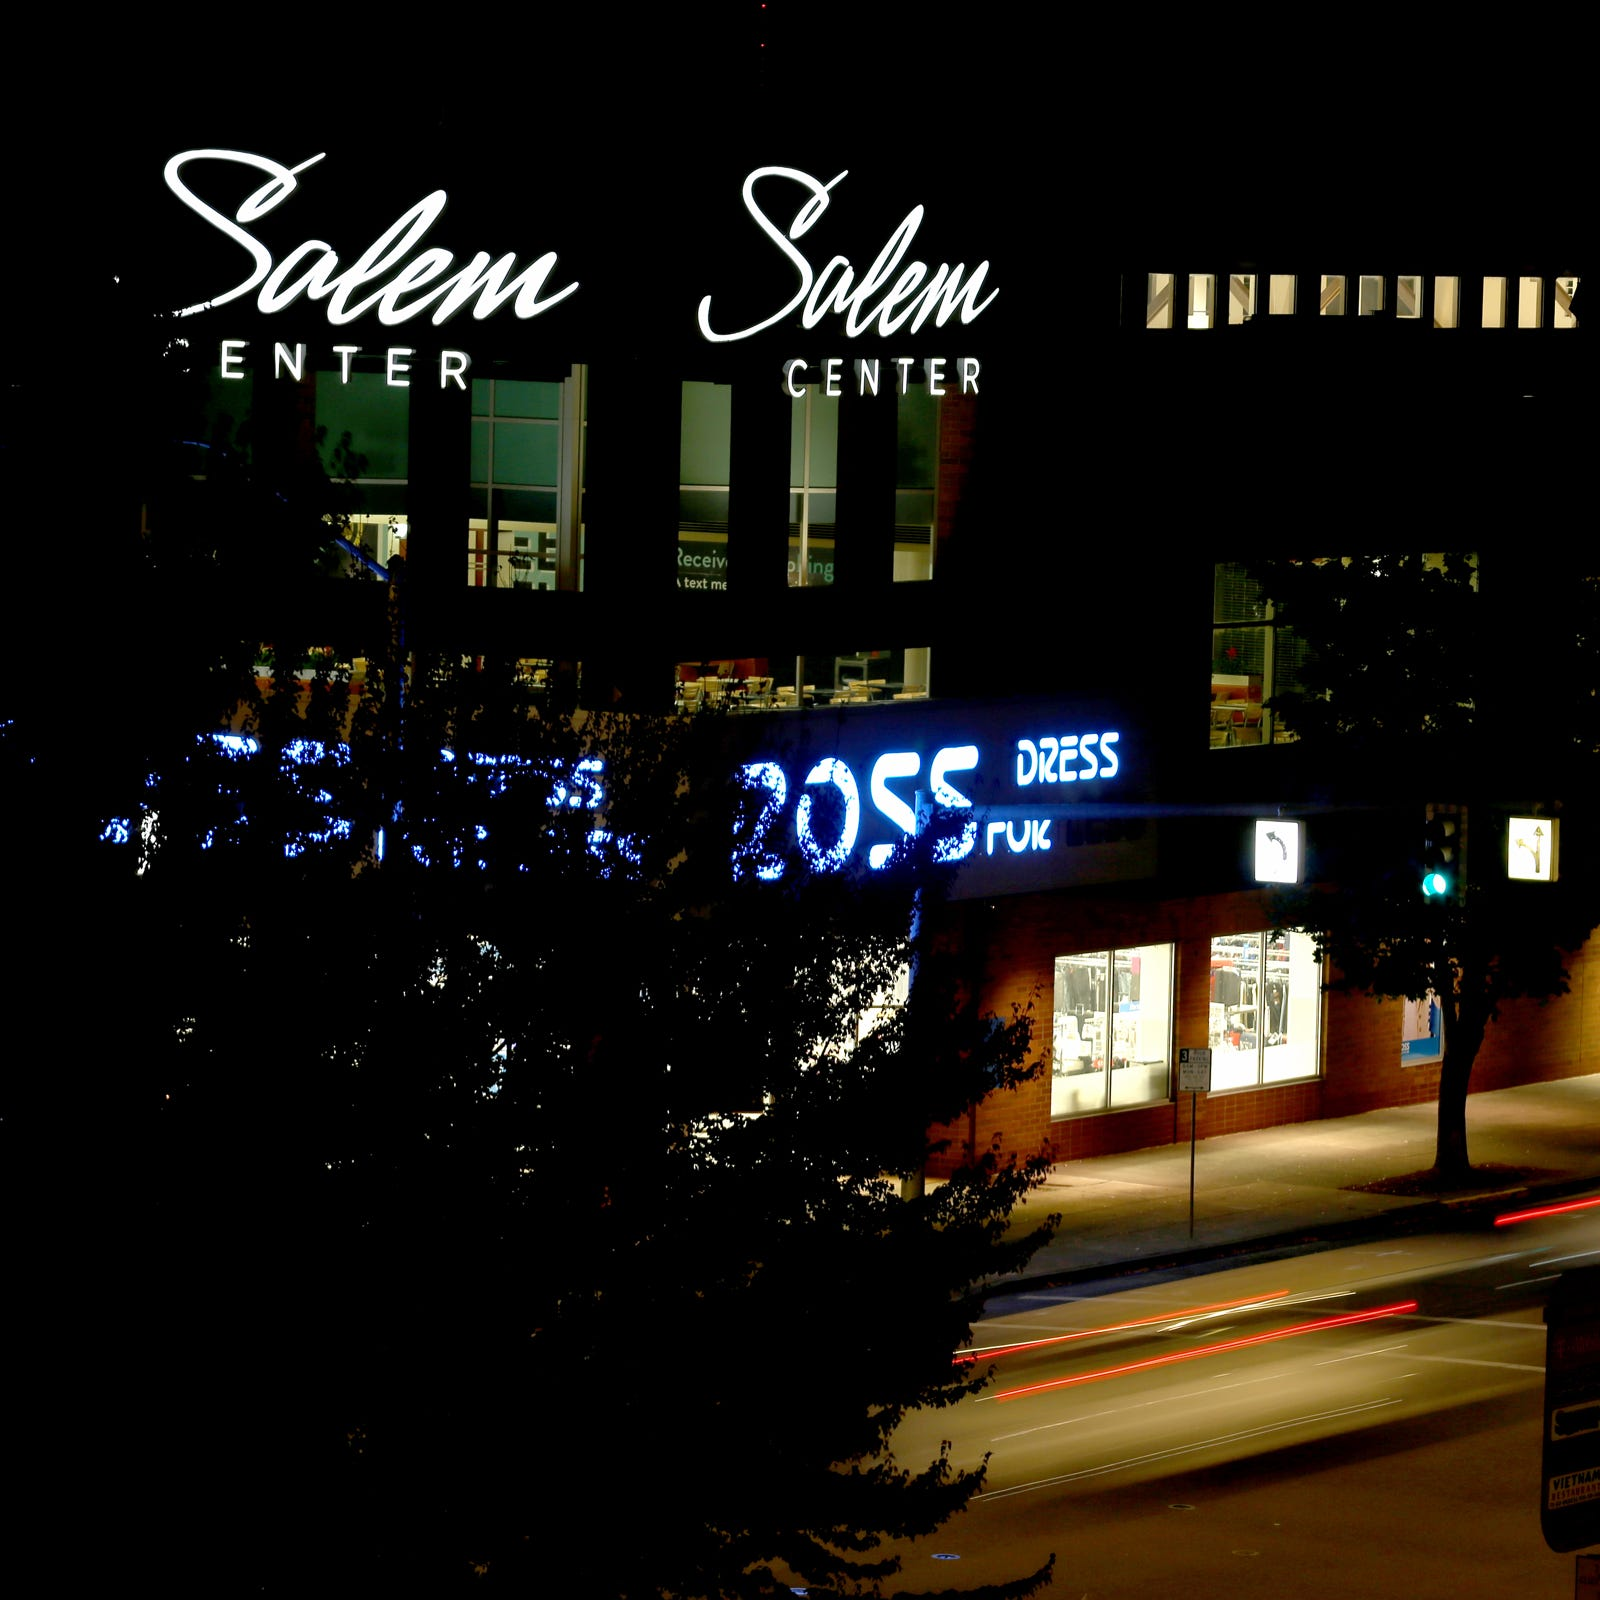 Salem Center sold for $27 million after former owners defaulted on loan